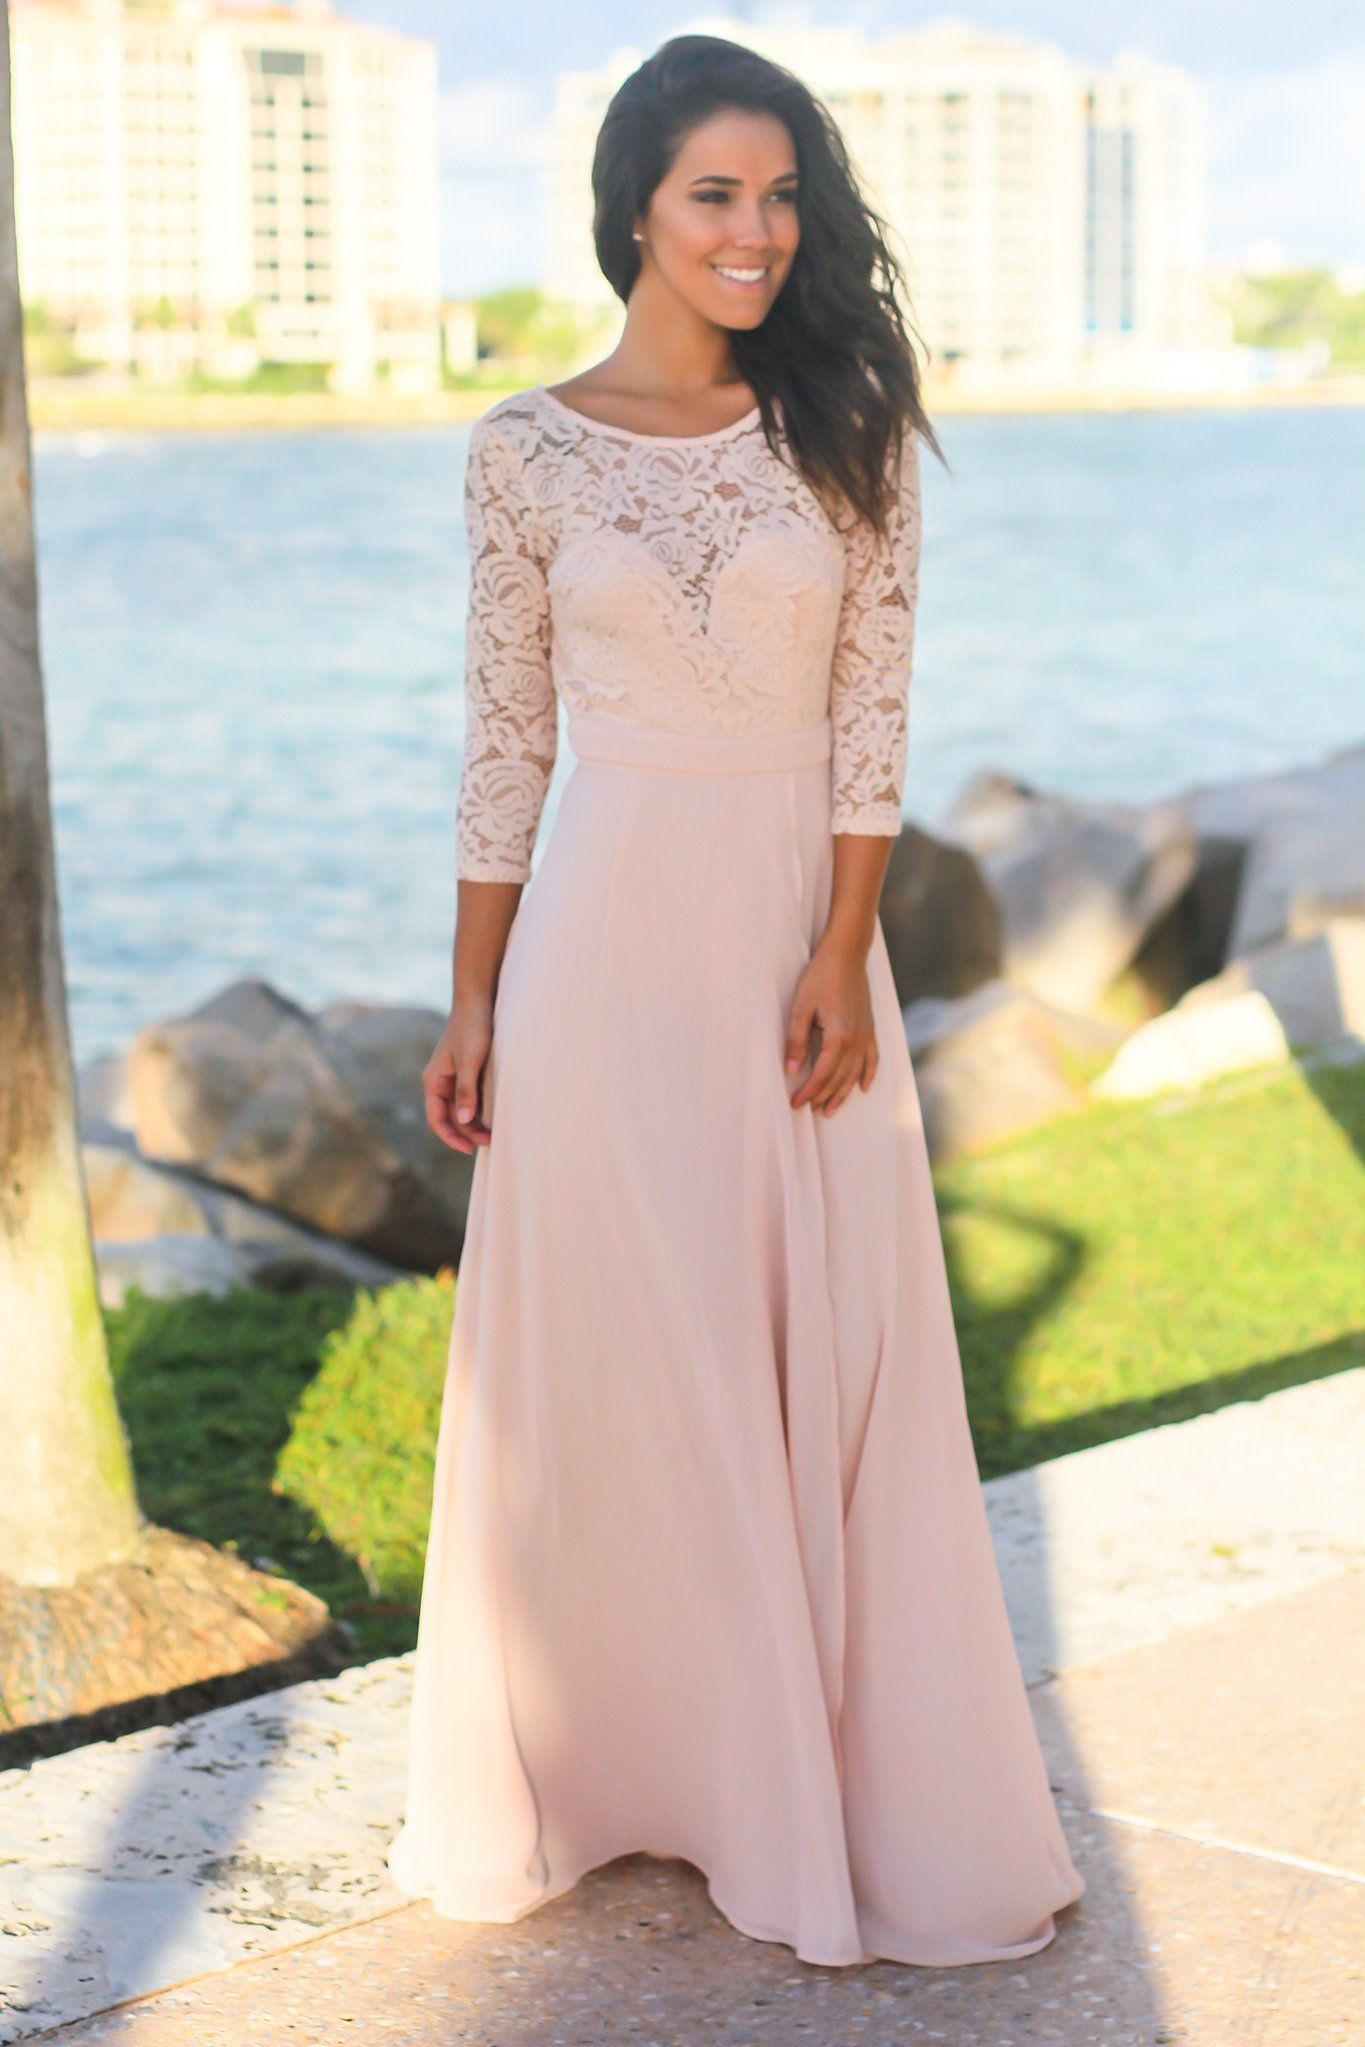 d9958759a0 Blush Lace Maxi Dress with 3 4 Sleeves in 2019